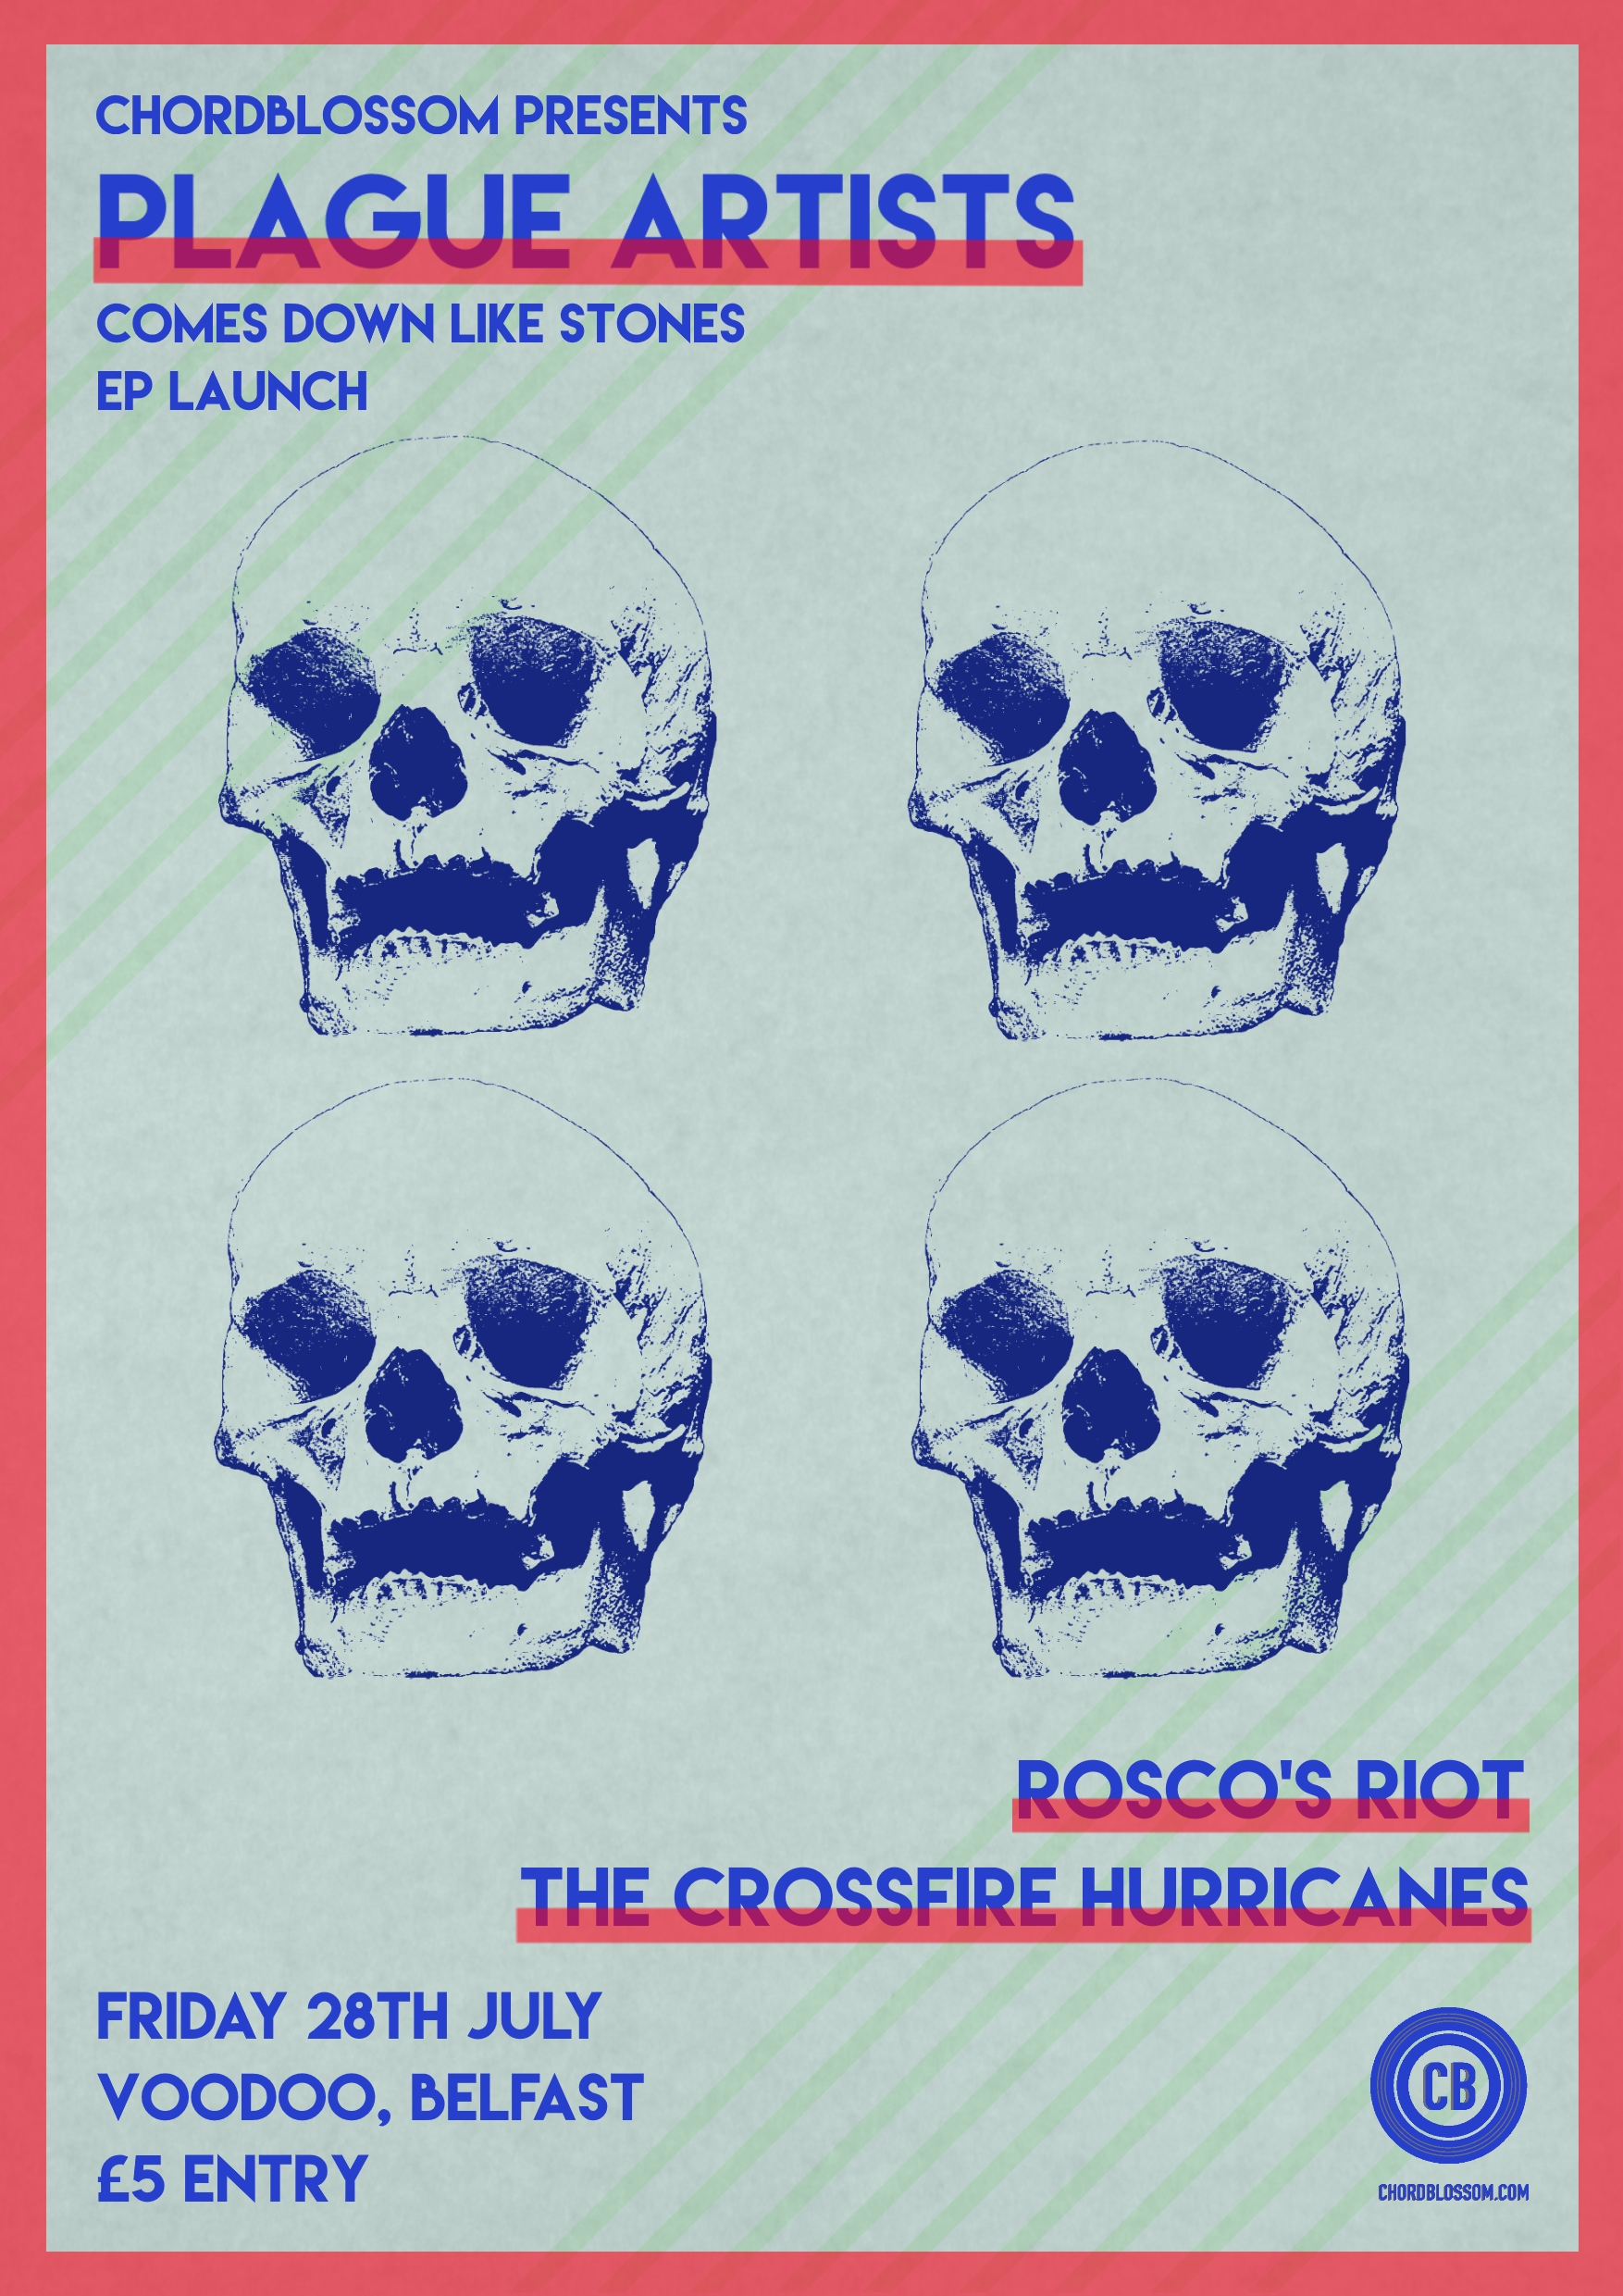 Chordblossom Presents: Plague Artists, Rosco's Riot and the Crossfire Hurricanes